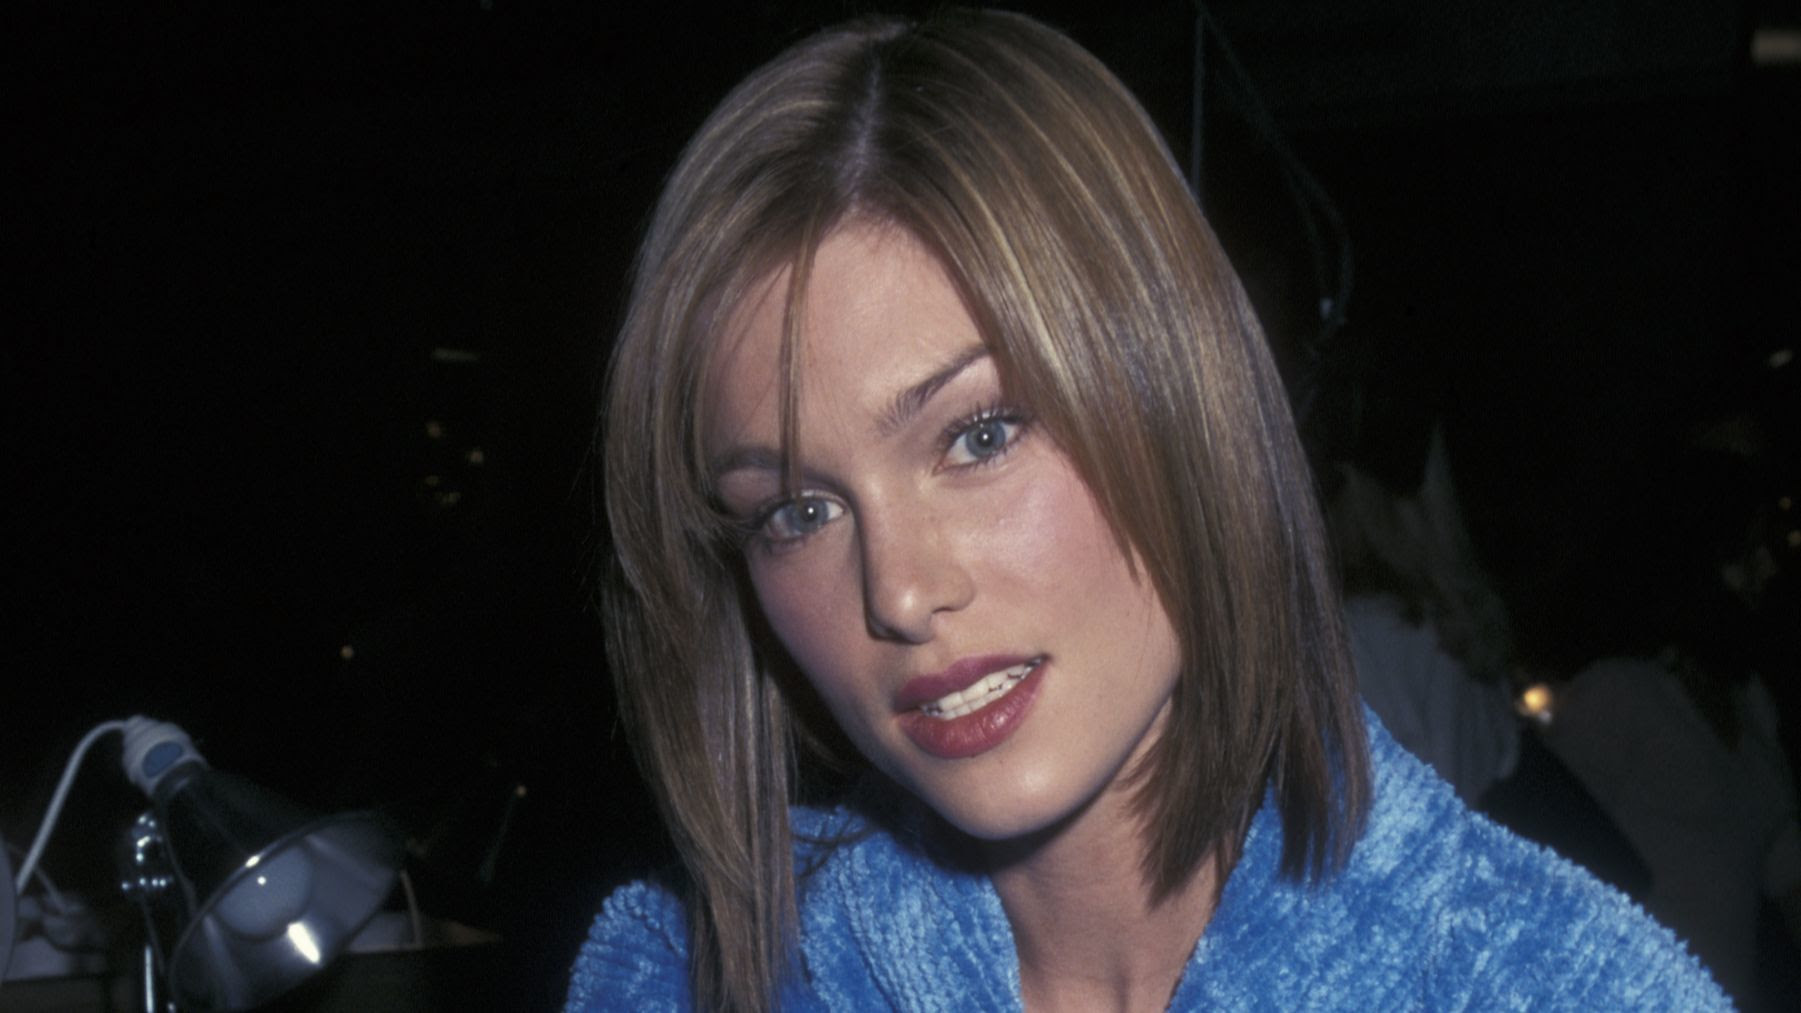 Model Keri Claussen Khalighi attends a 1998 Victoria's Secret fashion show in New York.